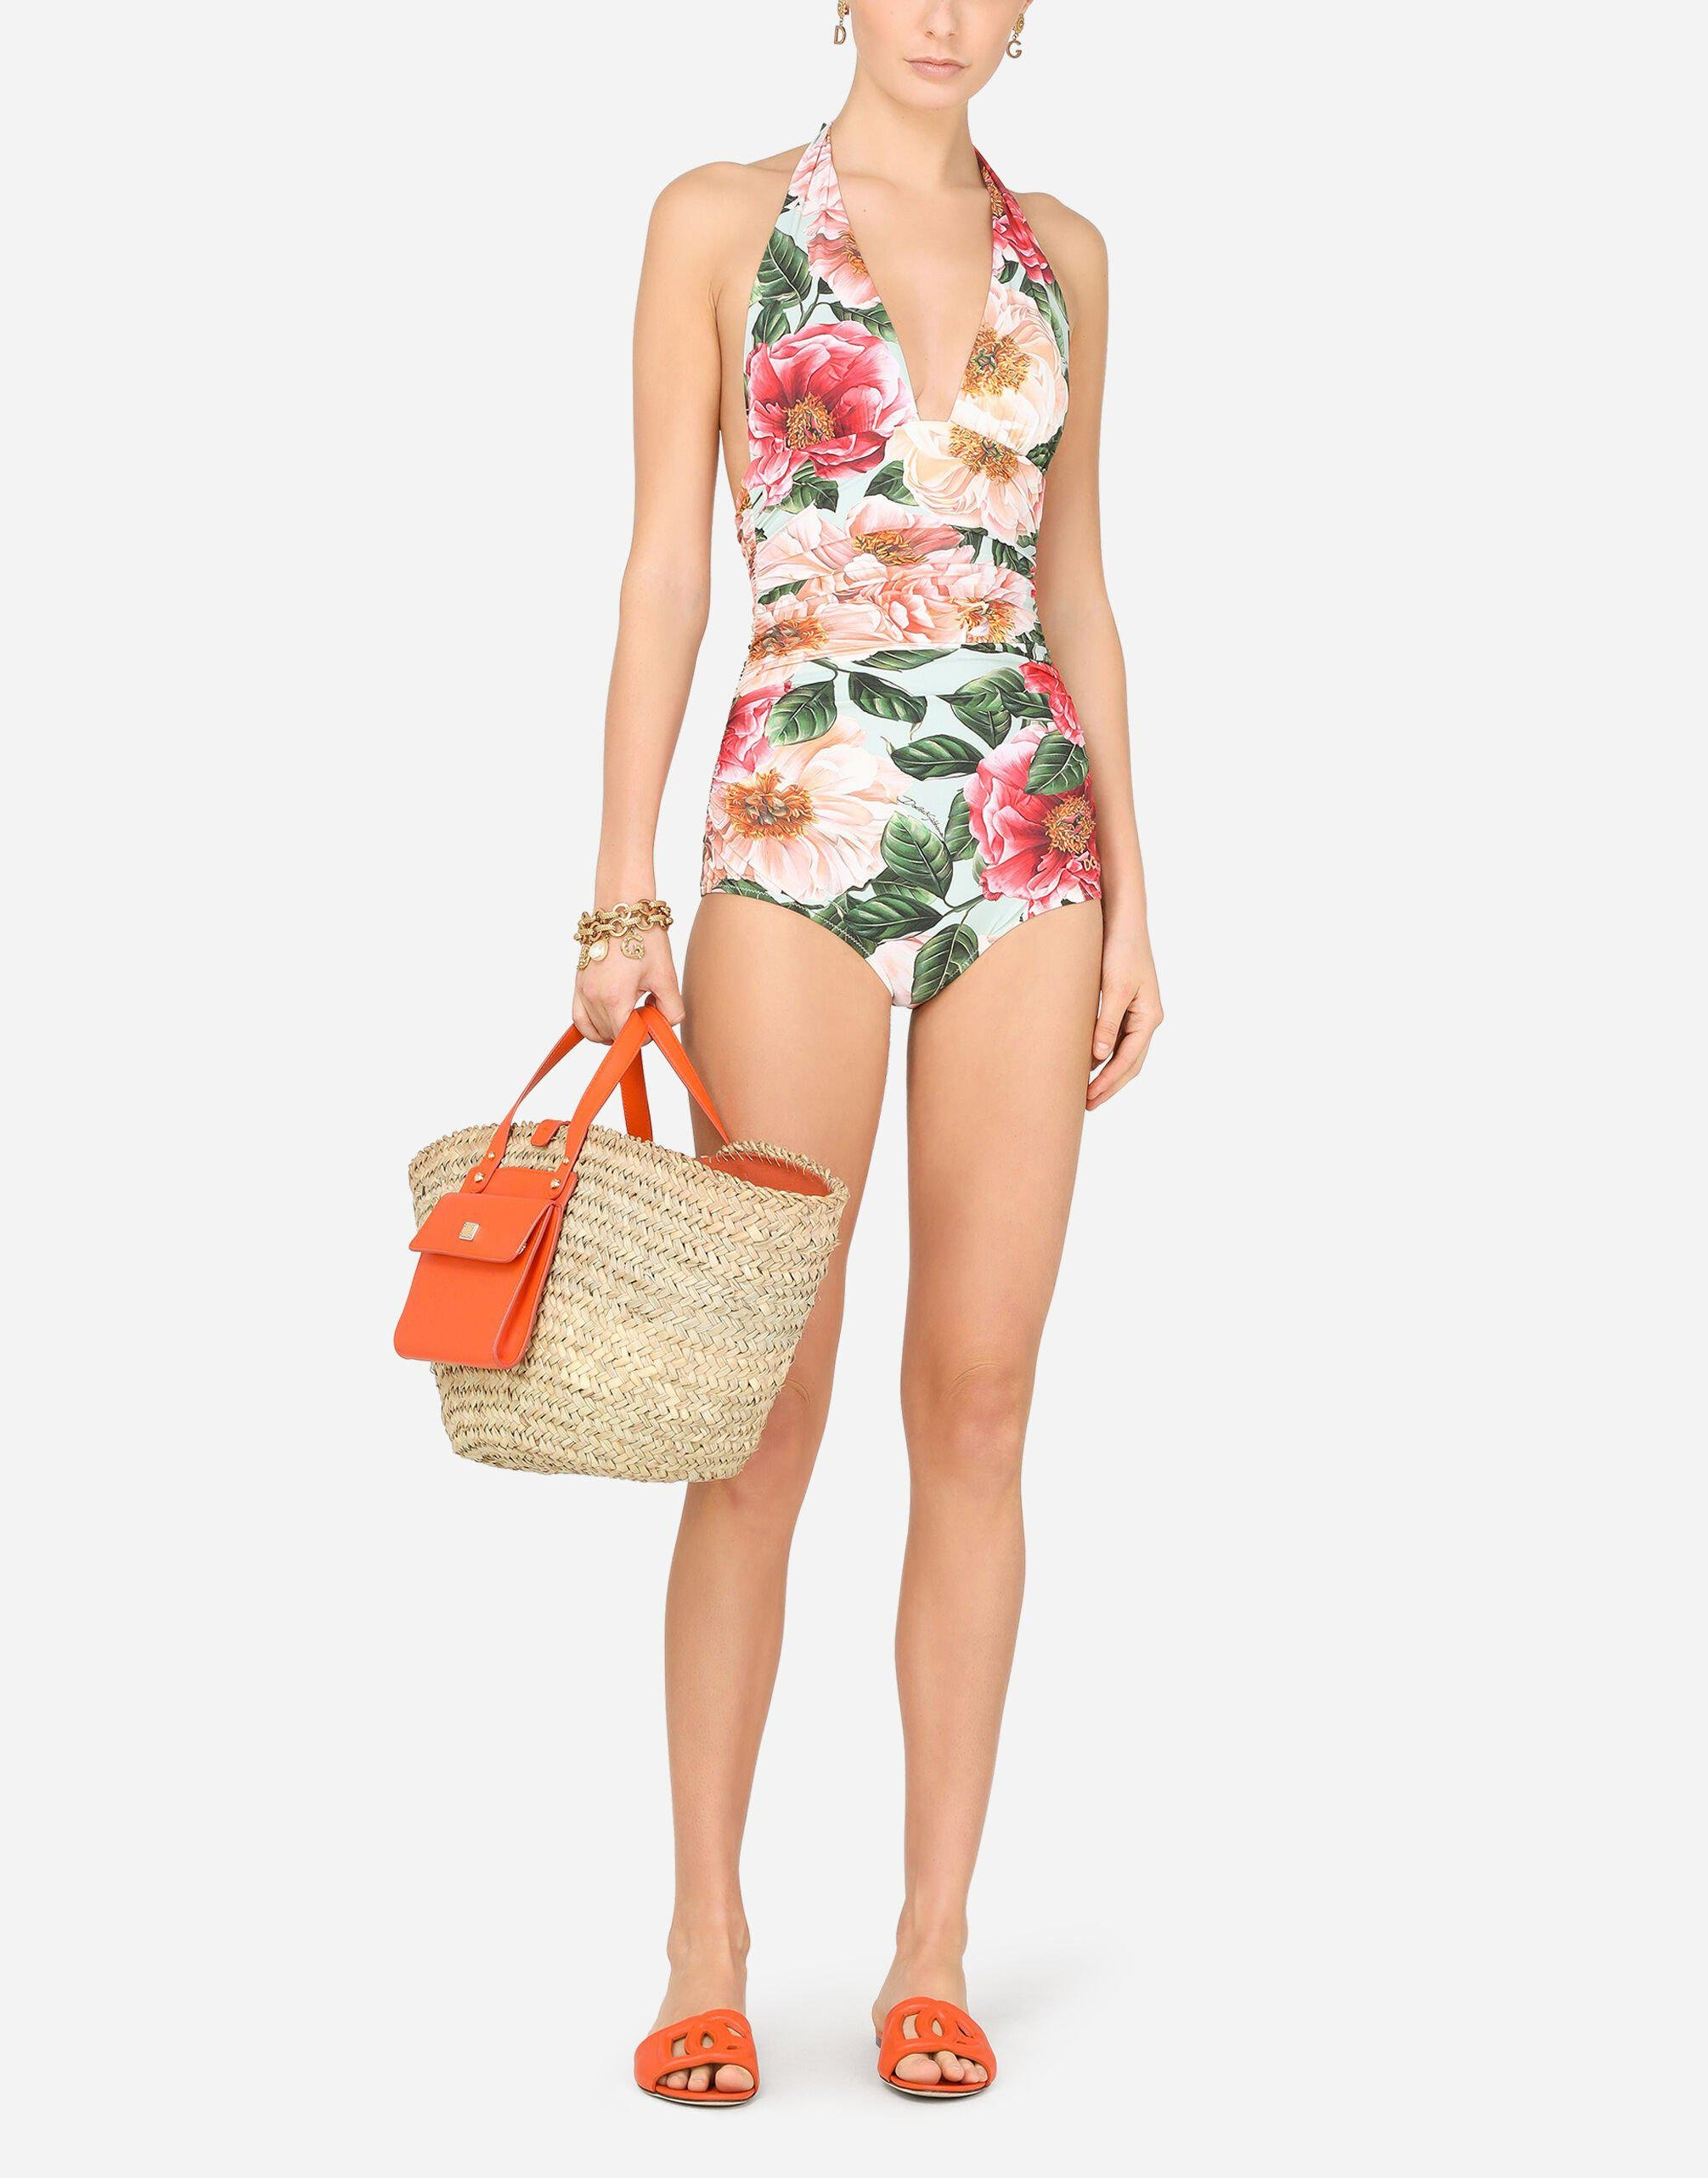 Camellia-print one-piece swimsuit with plunging neckline